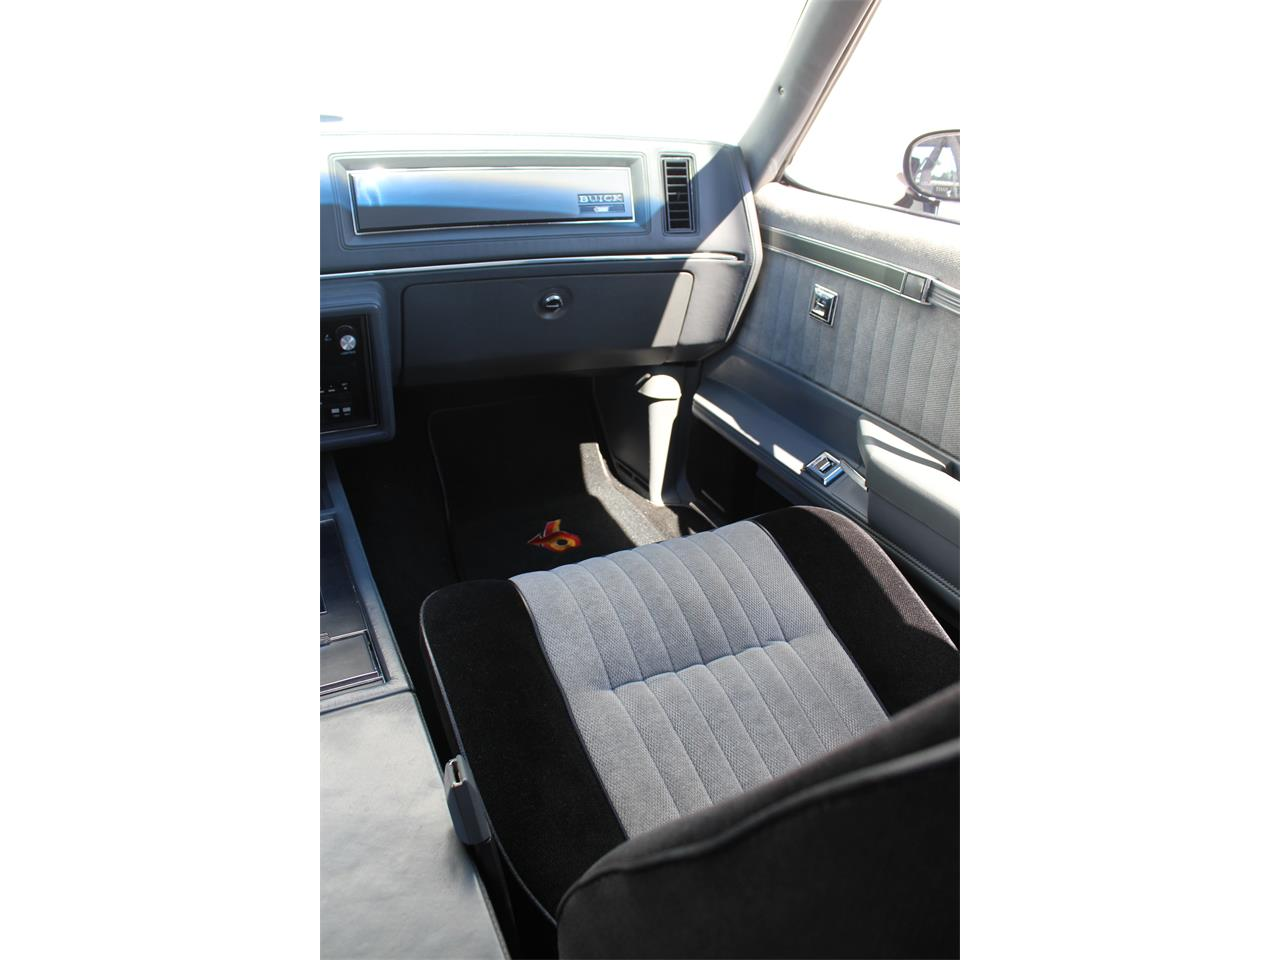 Large Picture of '87 Buick Grand National located in Carson California - $29,000.00 - J062